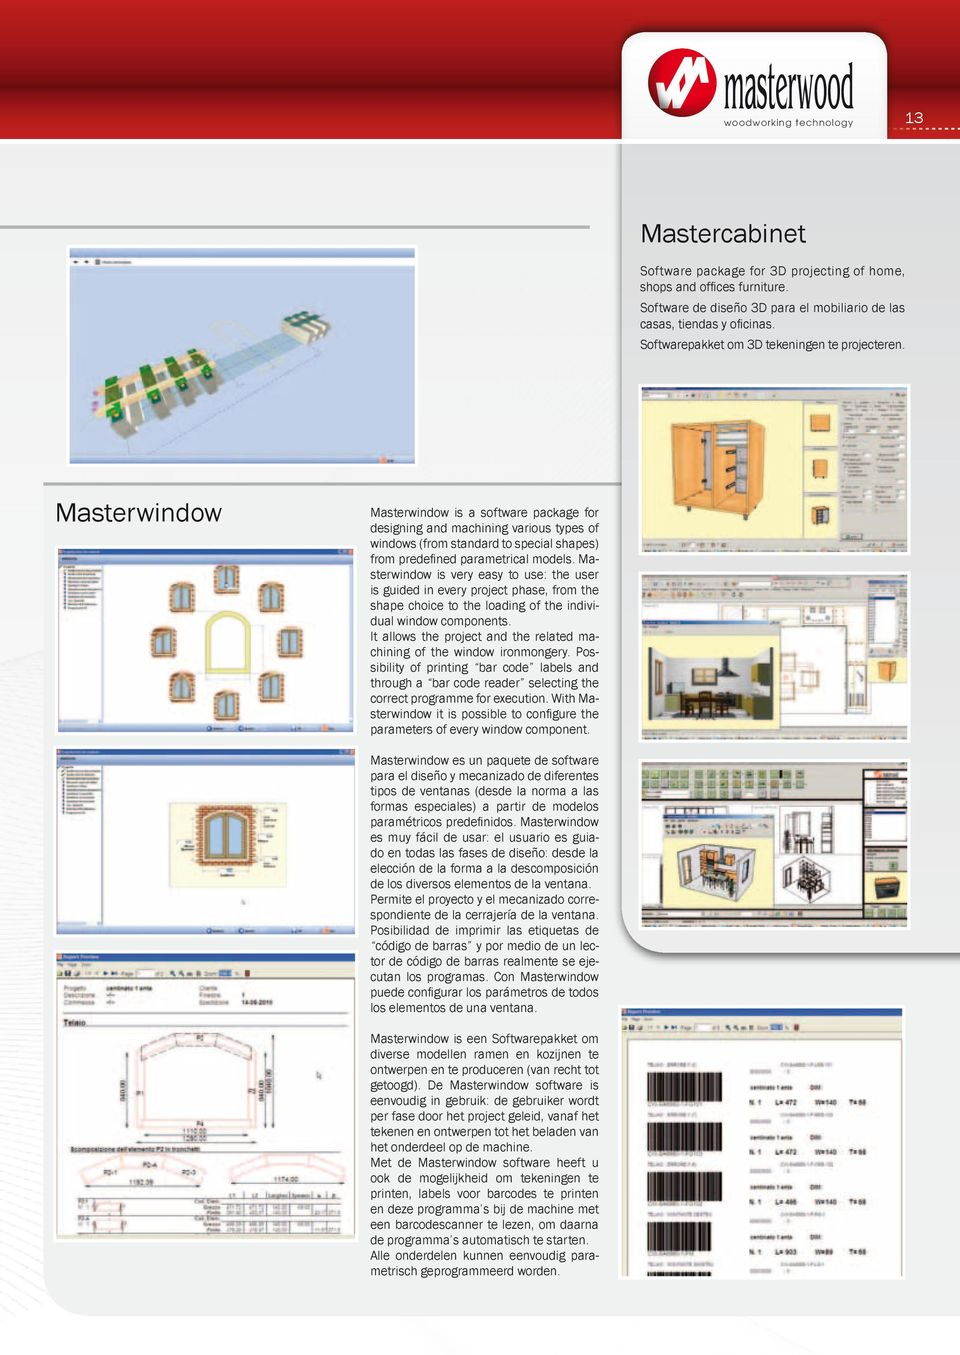 Masterwindow Masterwindow is a software package for designing and machining various types of windows (from standard to special shapes) from predefined parametrical models.